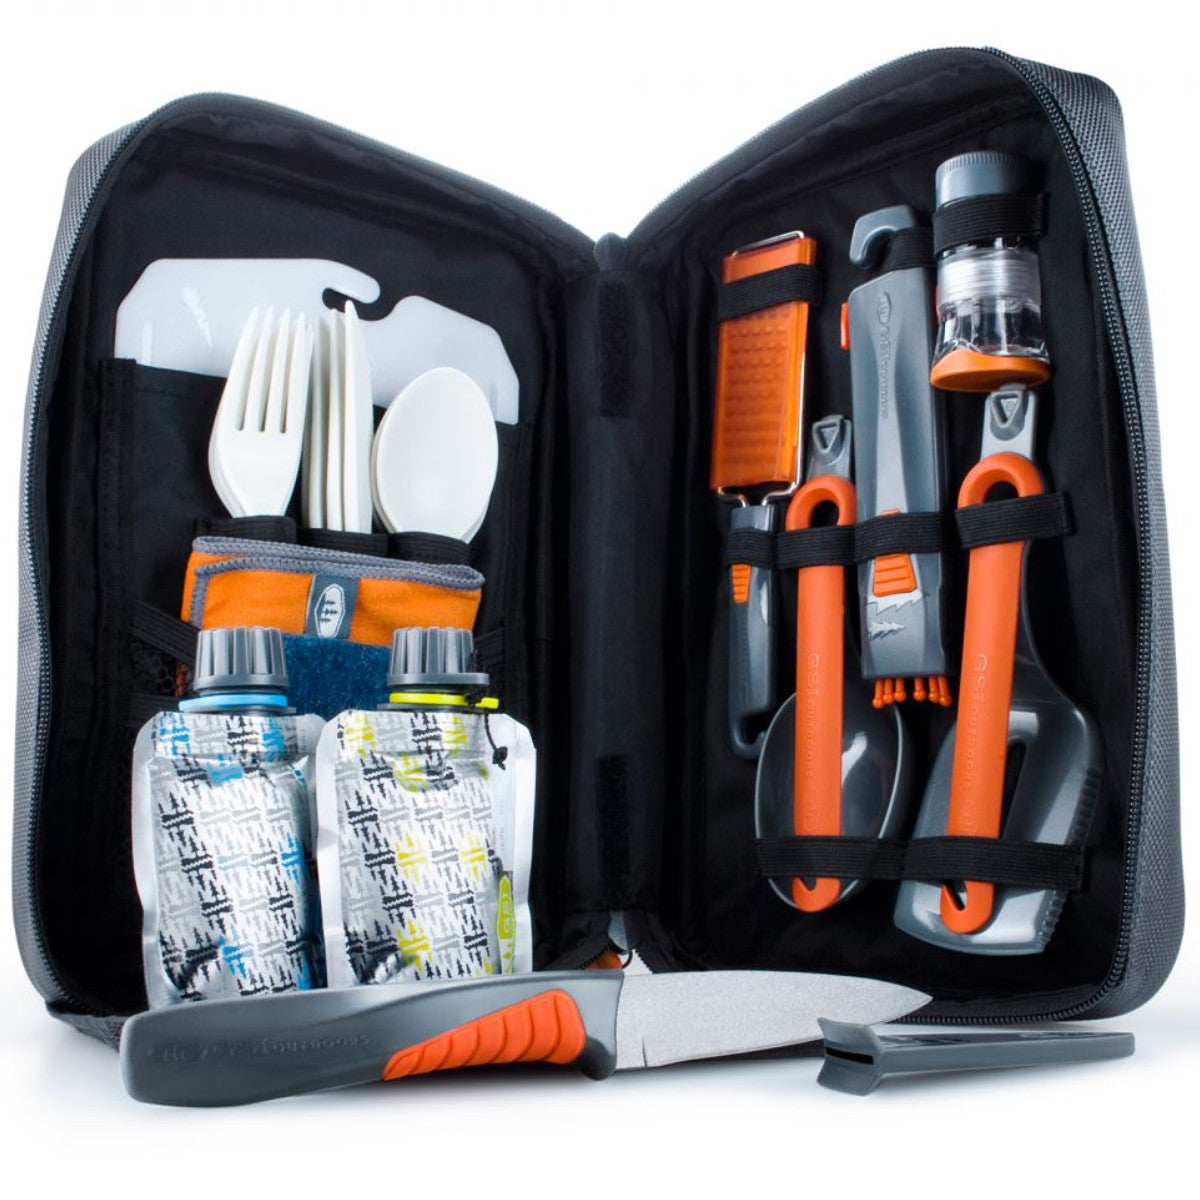 GSI Destination Kitchen 24, showing storage pack open with camping cutlery inside